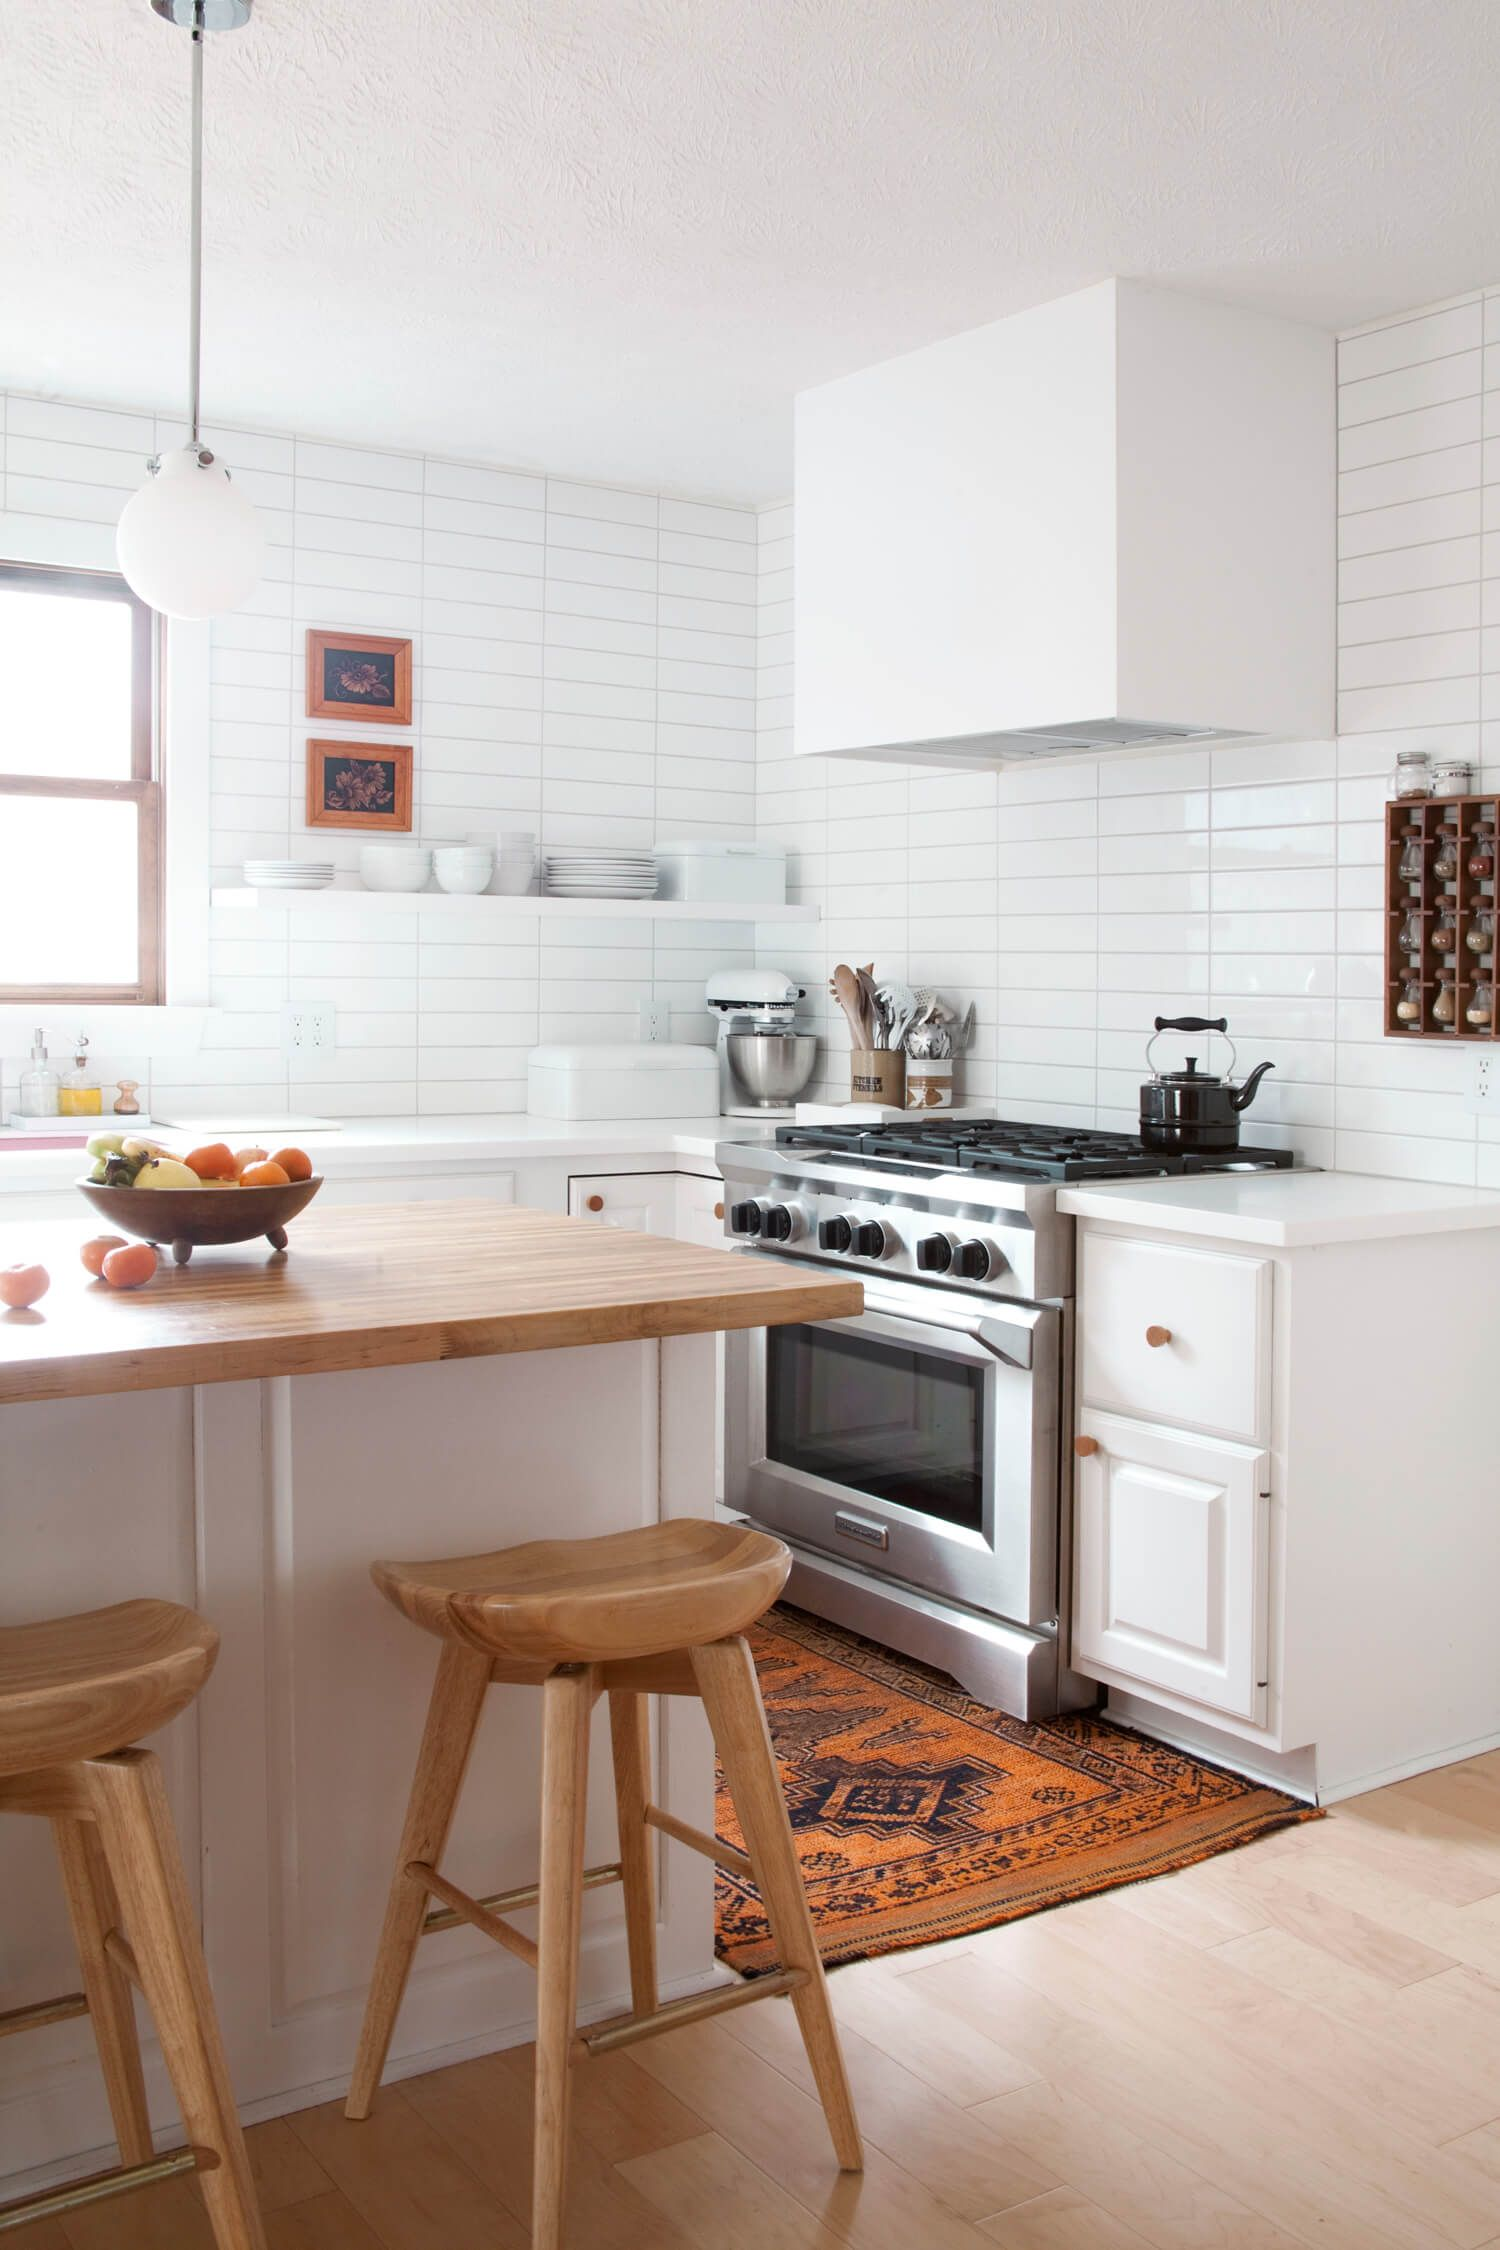 renovated kitchen honest beams what we loved this week in 2018 inspire kitchens pinterest inside a light filled that includes white tiles open shelving and bubblegum pink sink